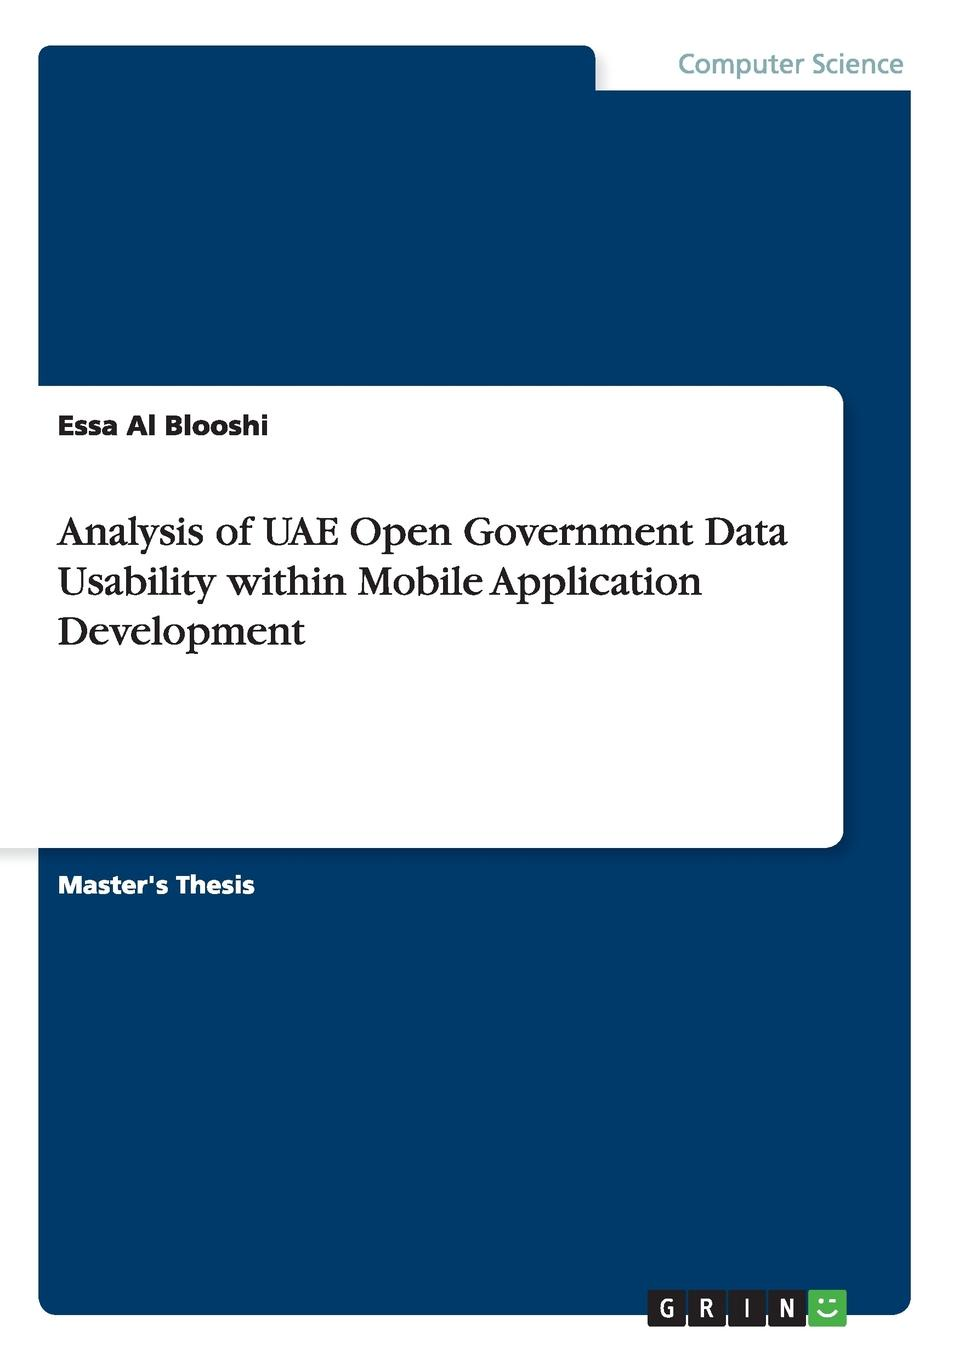 Essa Al Blooshi Analysis of UAE Open Government Data Usability within Mobile Application Development richard rodger beginning mobile application development in the cloud